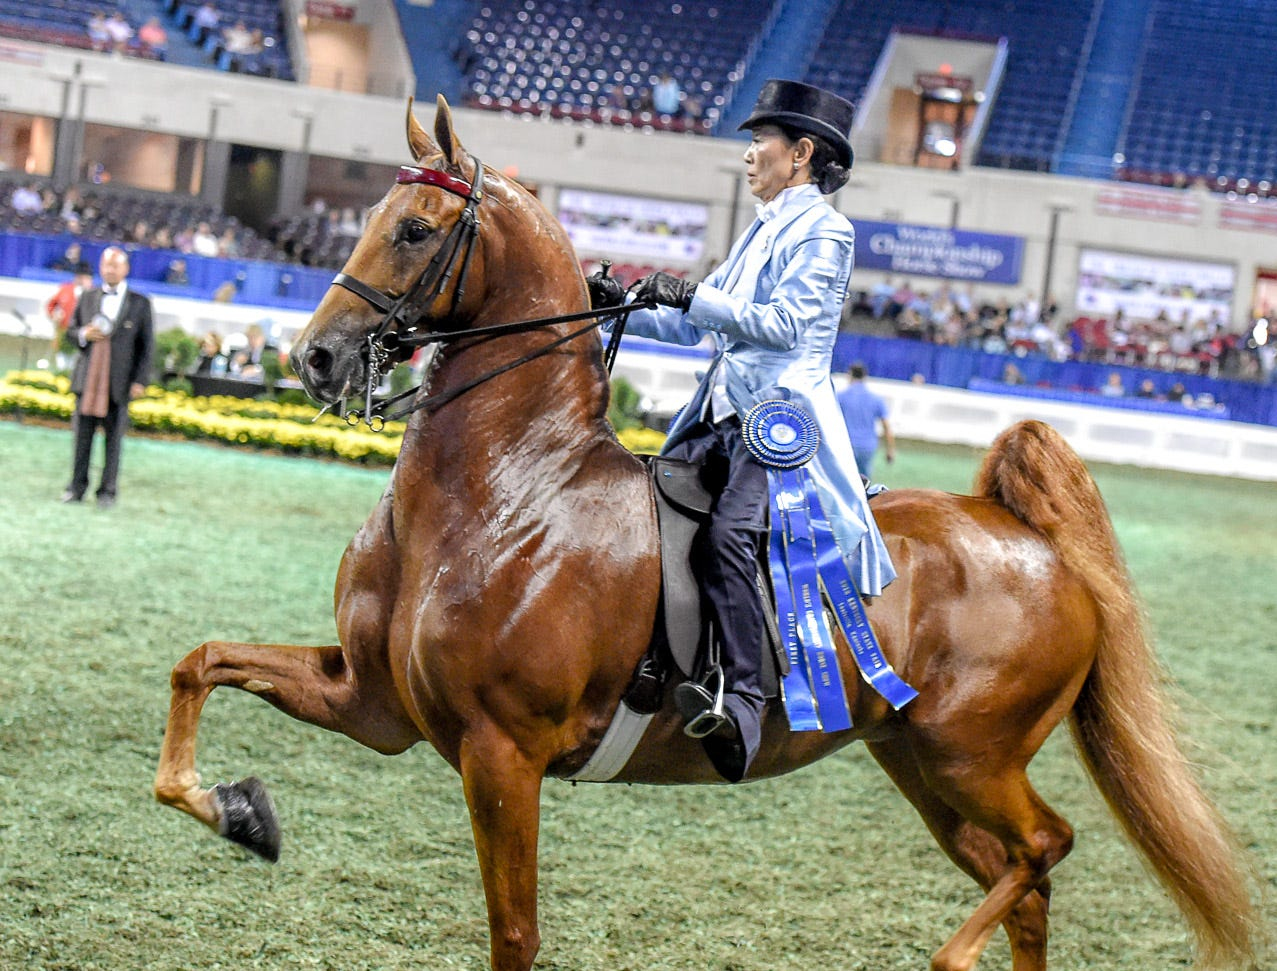 3 GAITED LADIES AM 15.2/U DIV I winner 